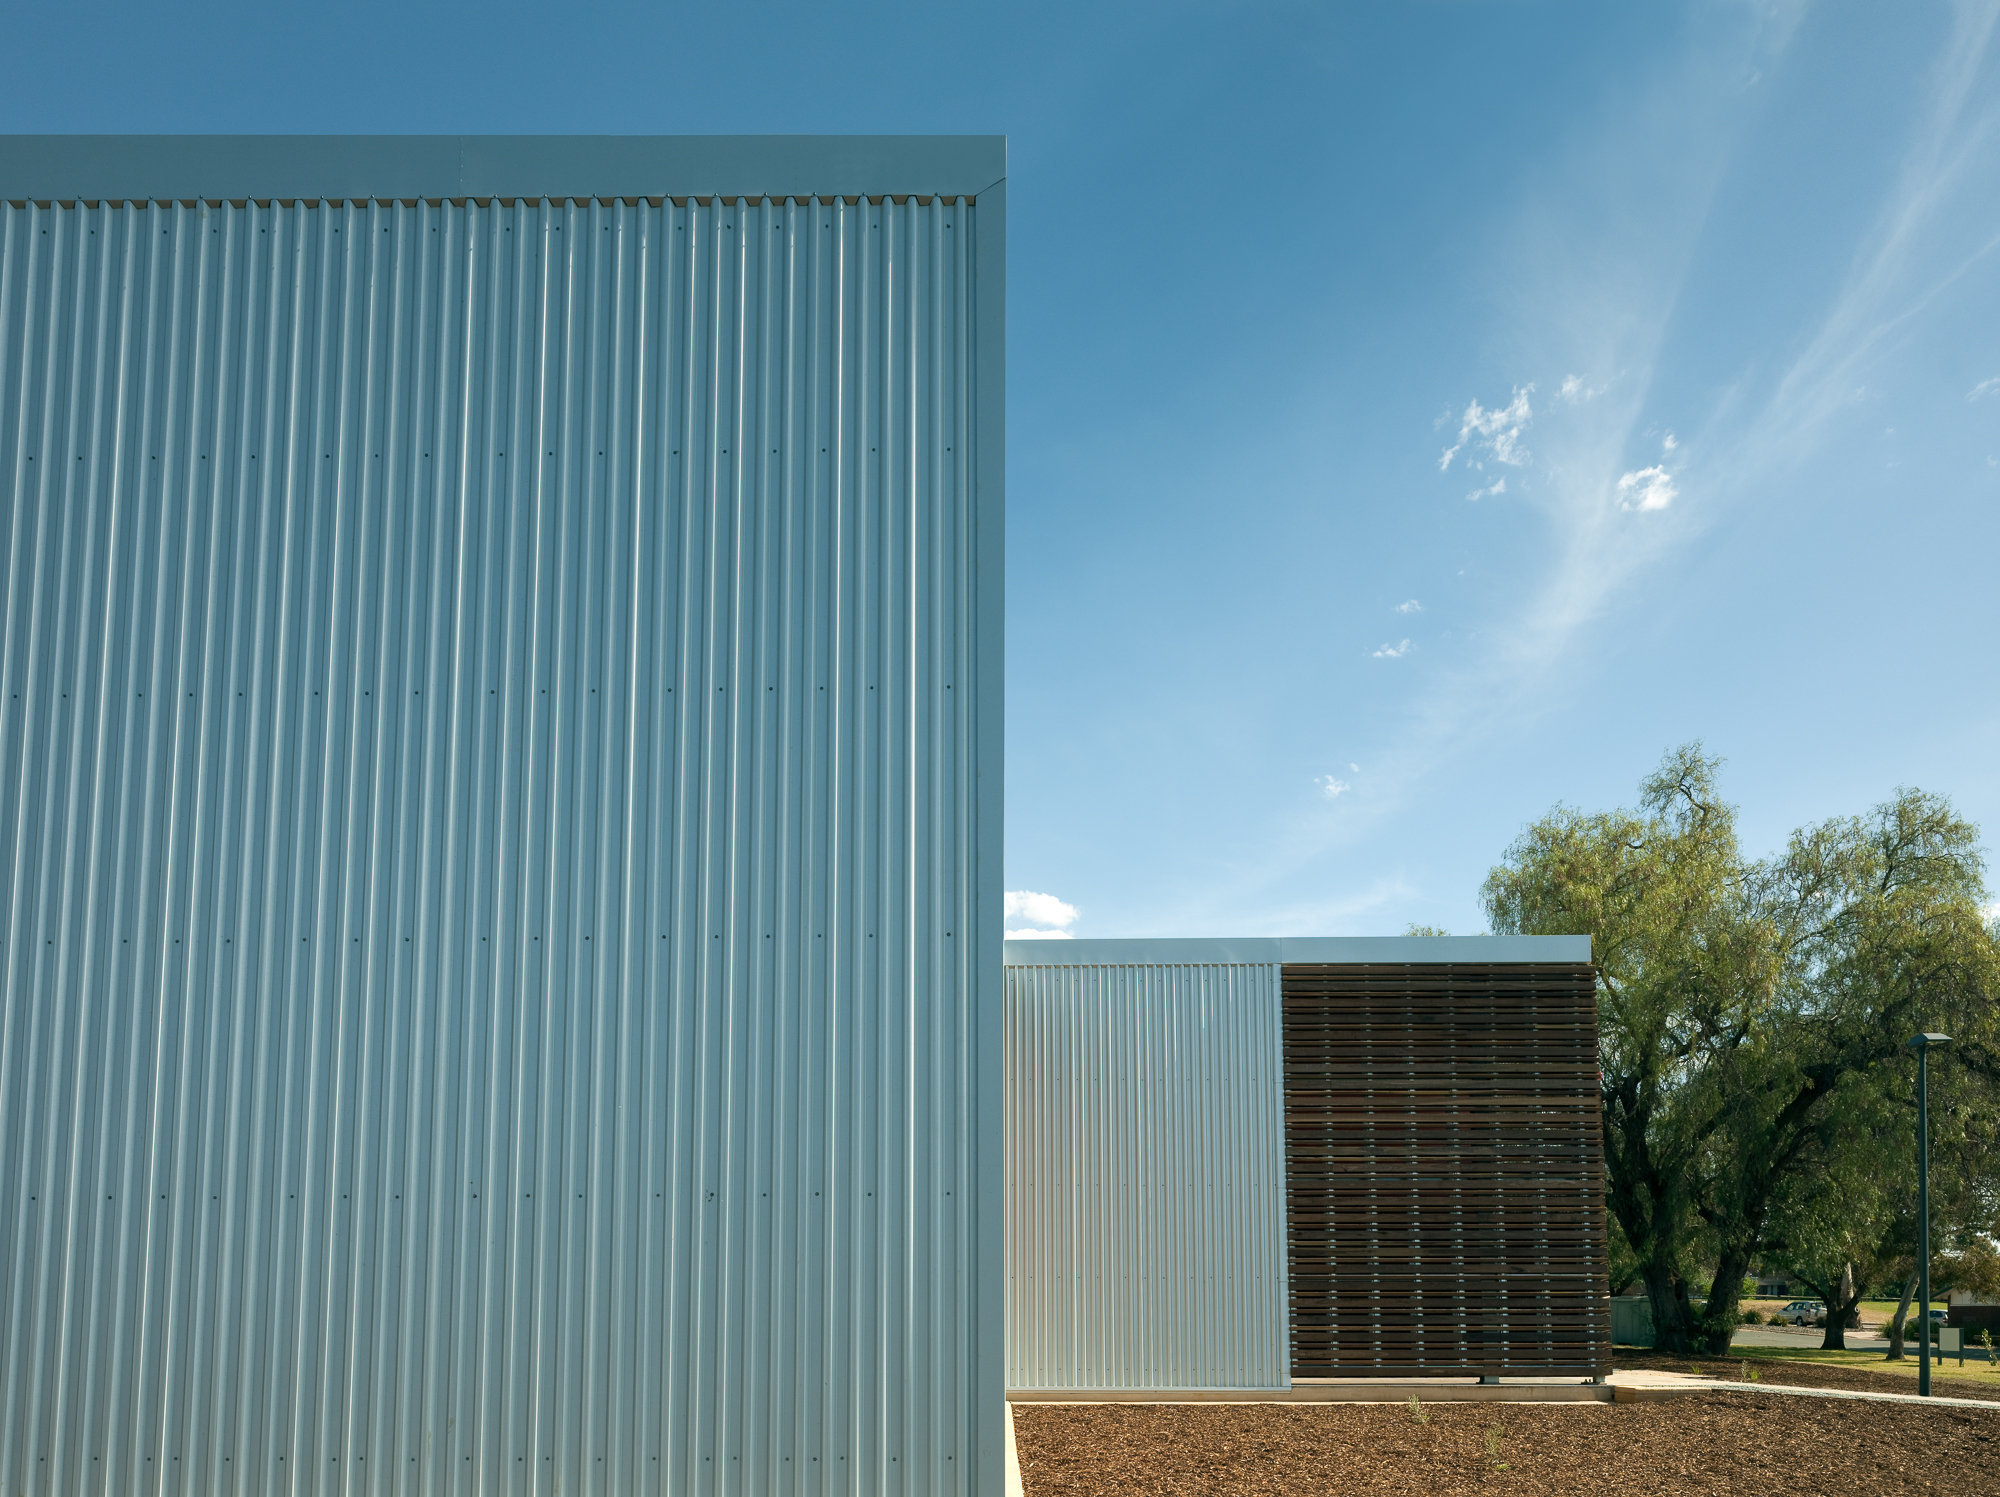 Veterinary Laboratories, Charles Sturt University, NSW